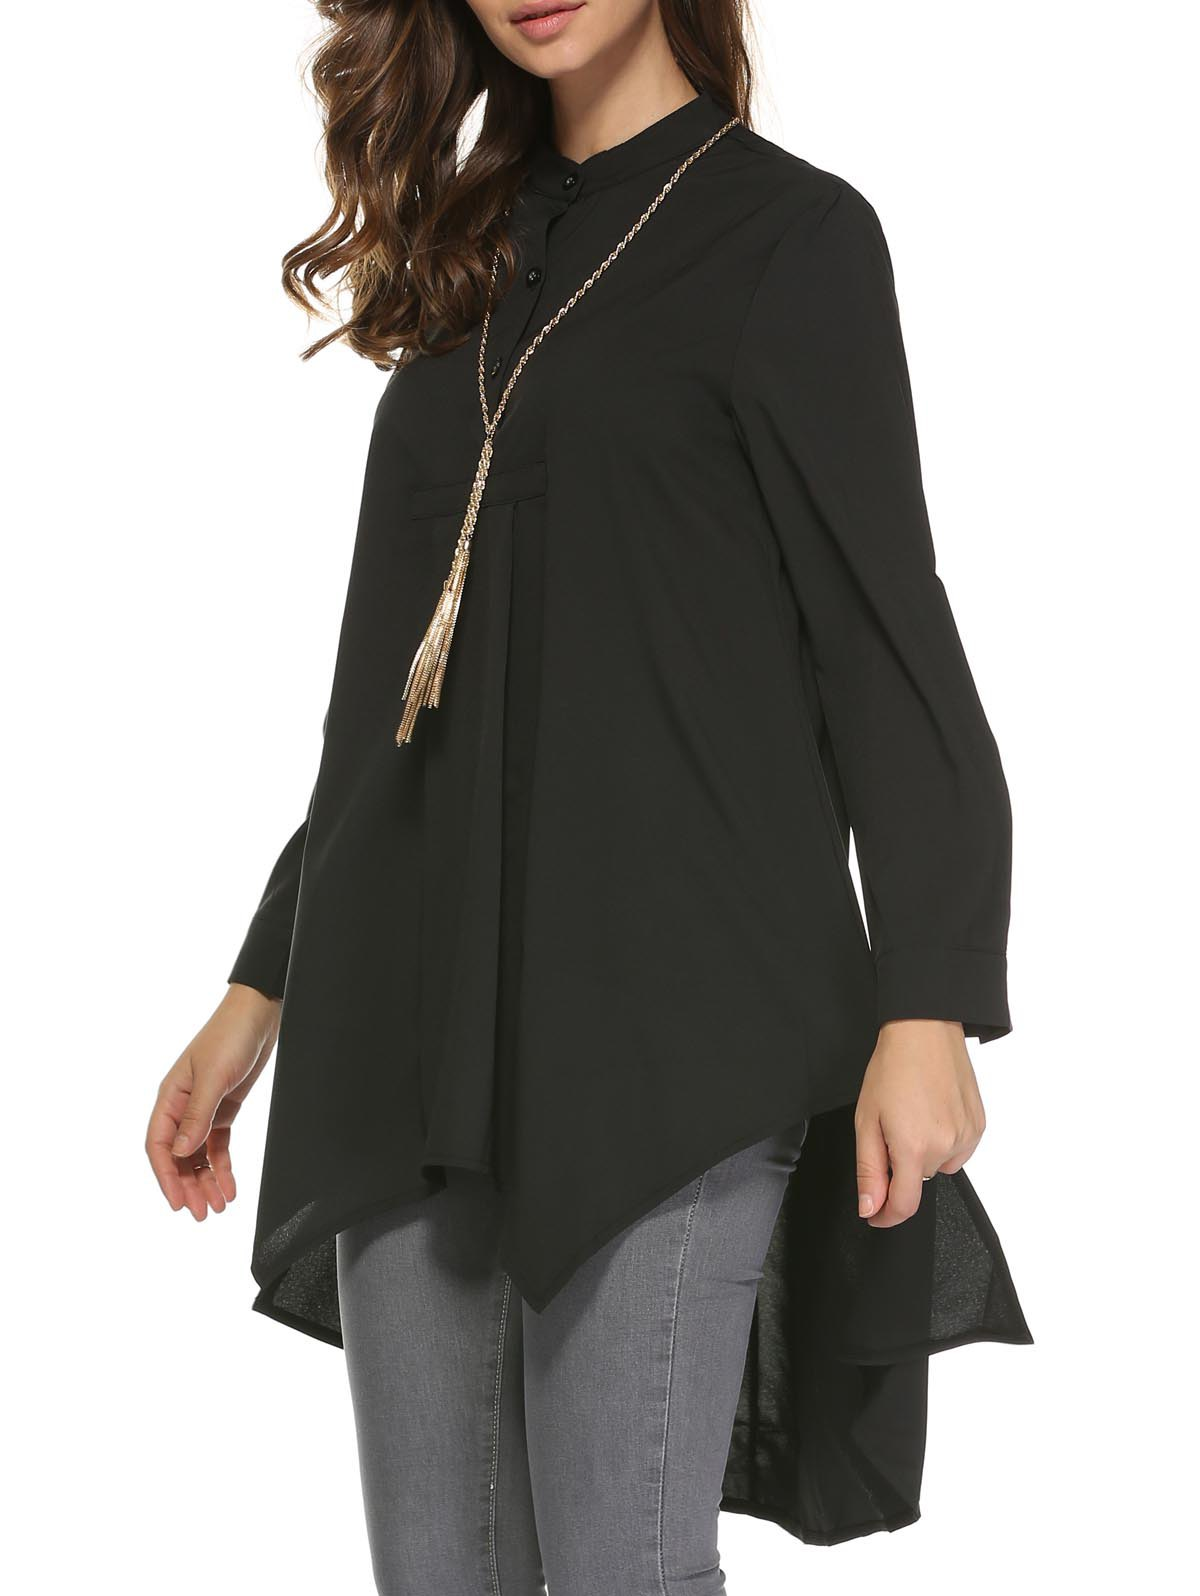 Long Sleeve Loose-Fitting High Low Blouse For Women